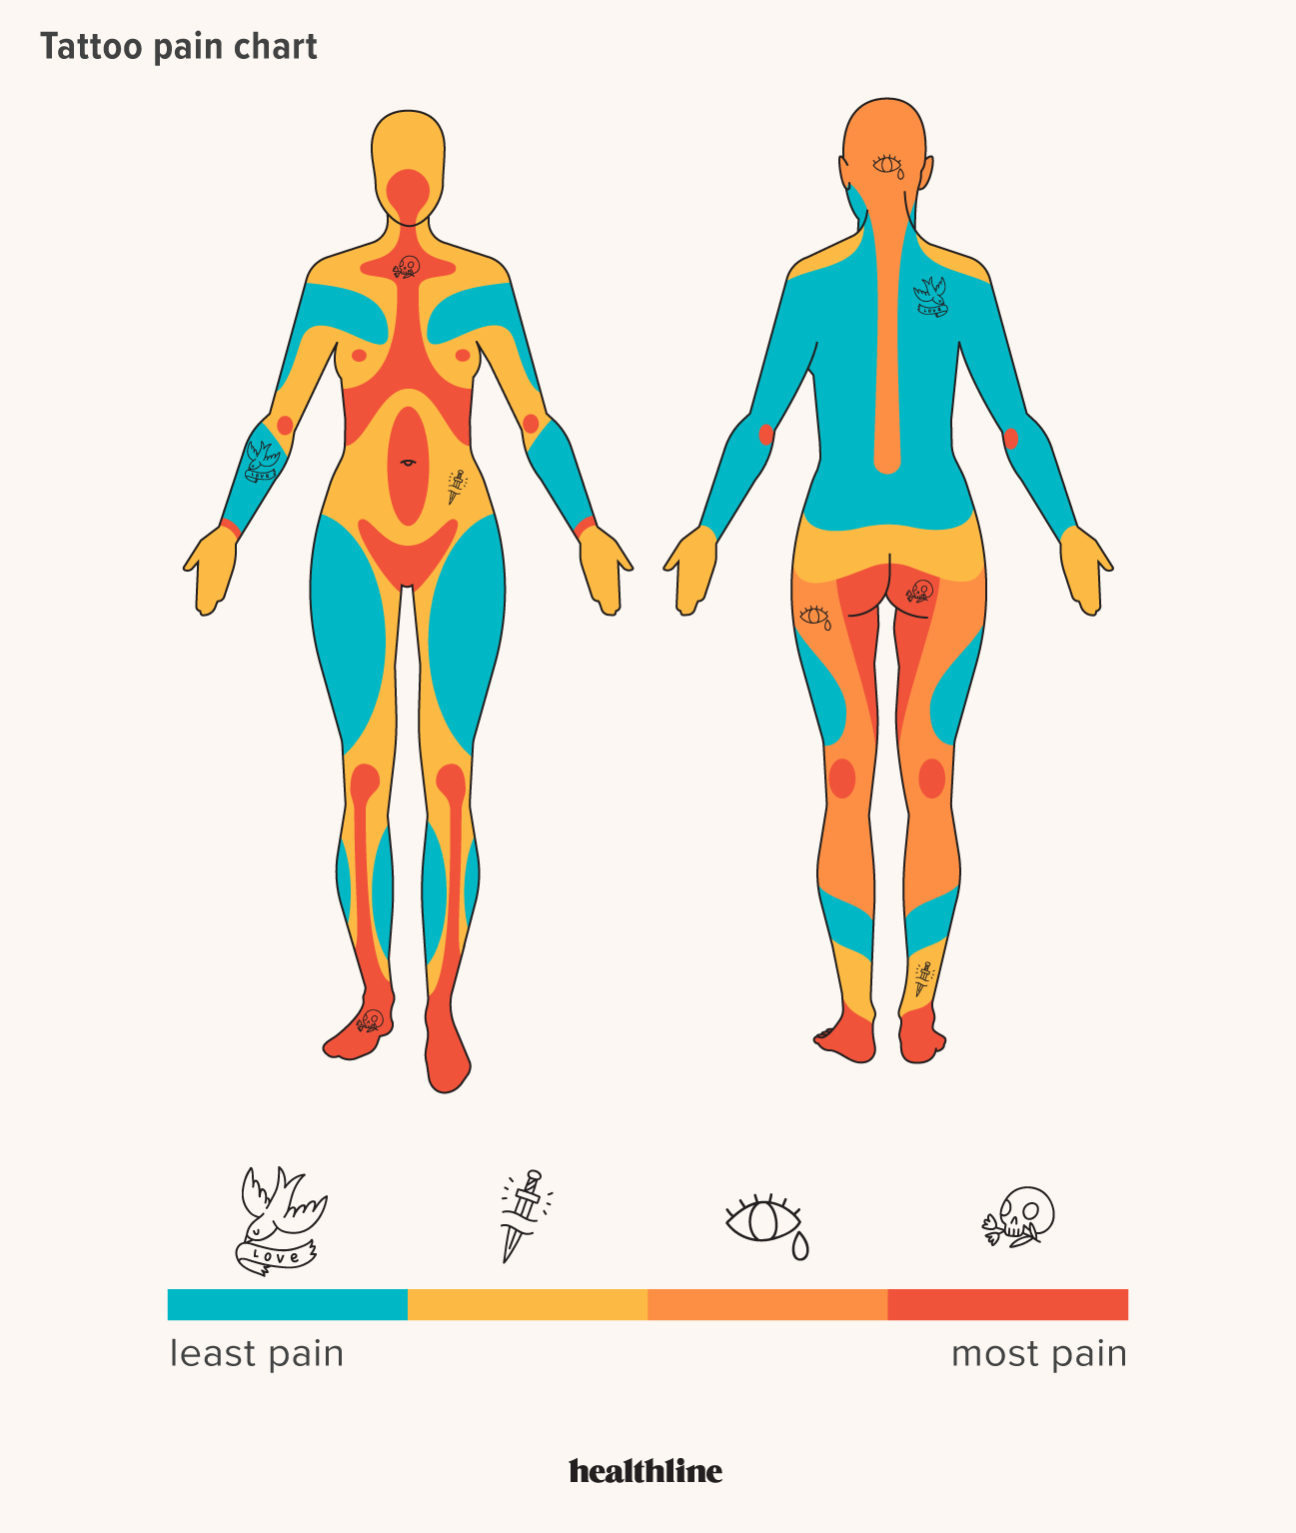 Tattoo Pain Chart Where It Hurts Most and Least, and More